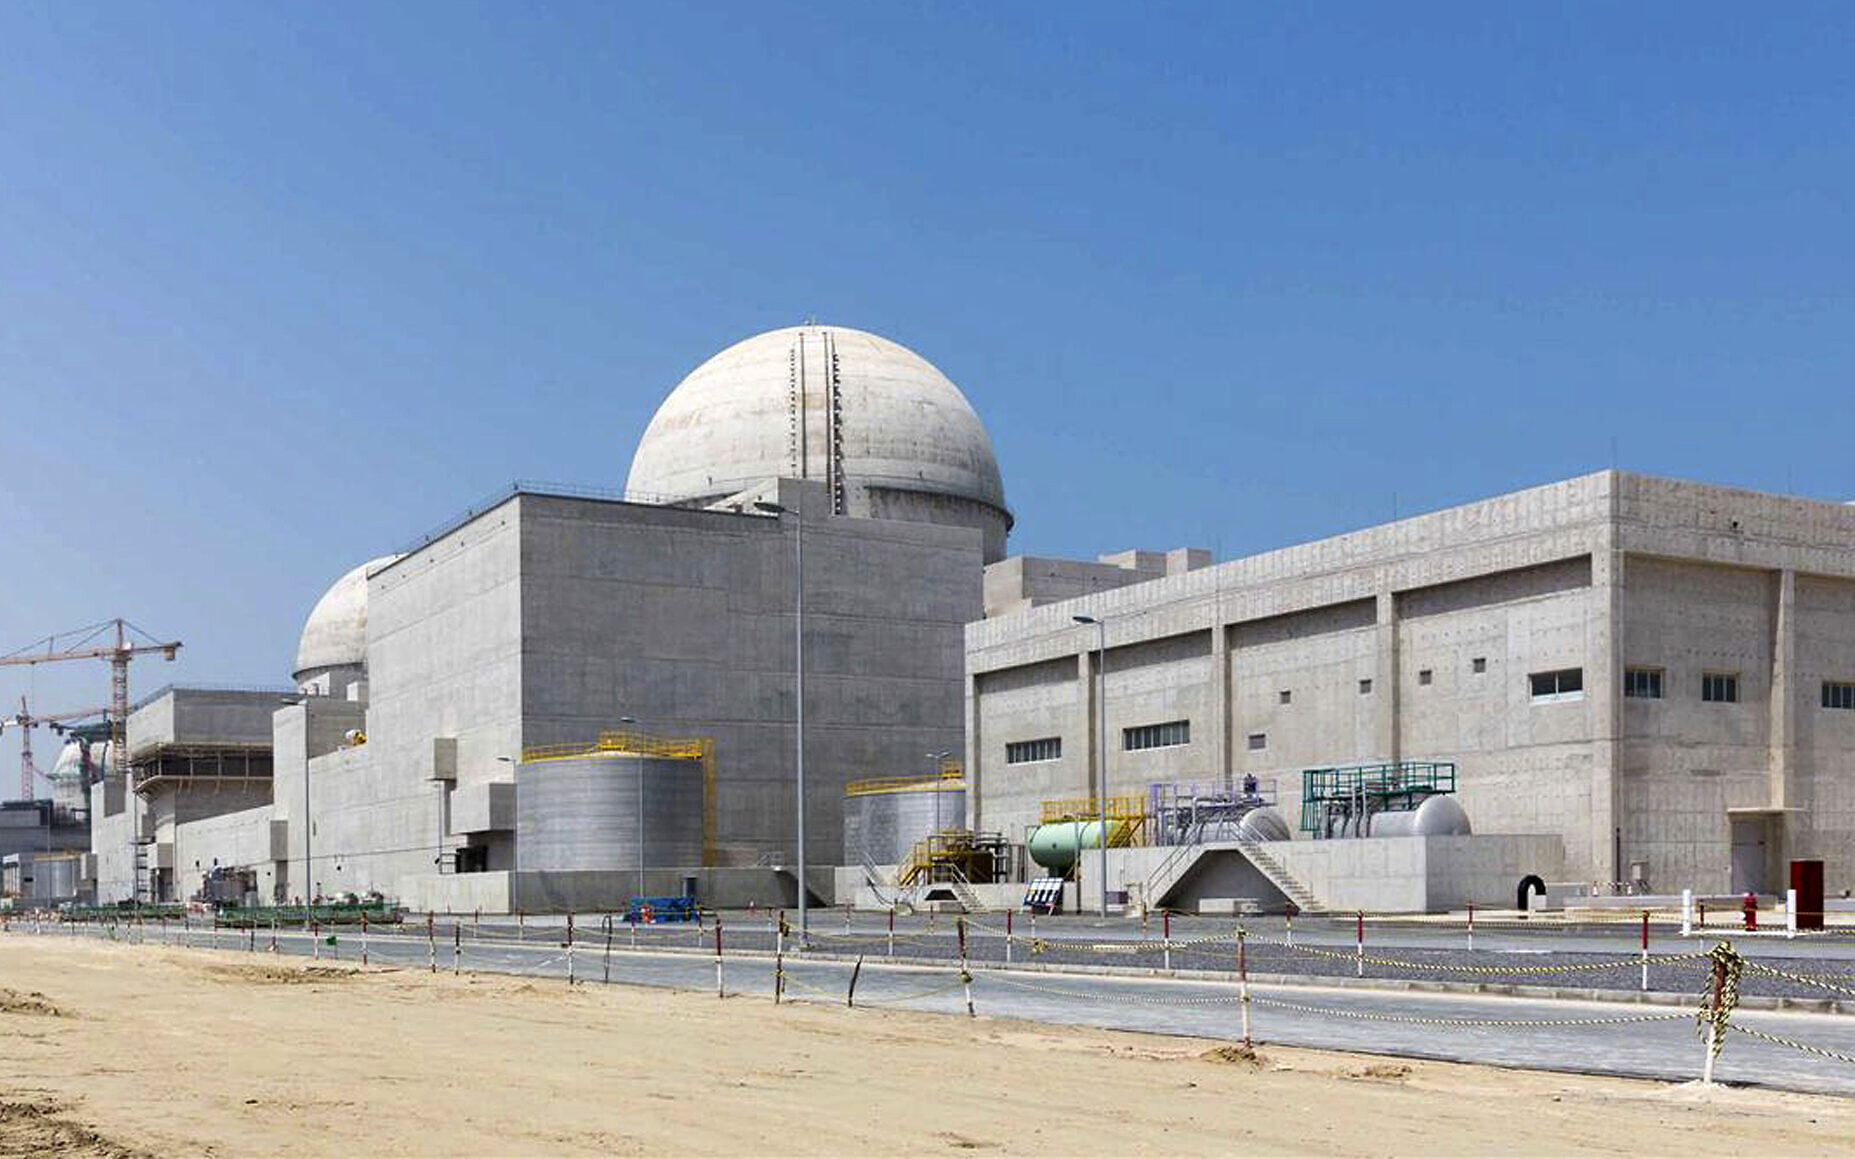 UAE Issues Operating License For Arab World's First Nuclear Power Plant